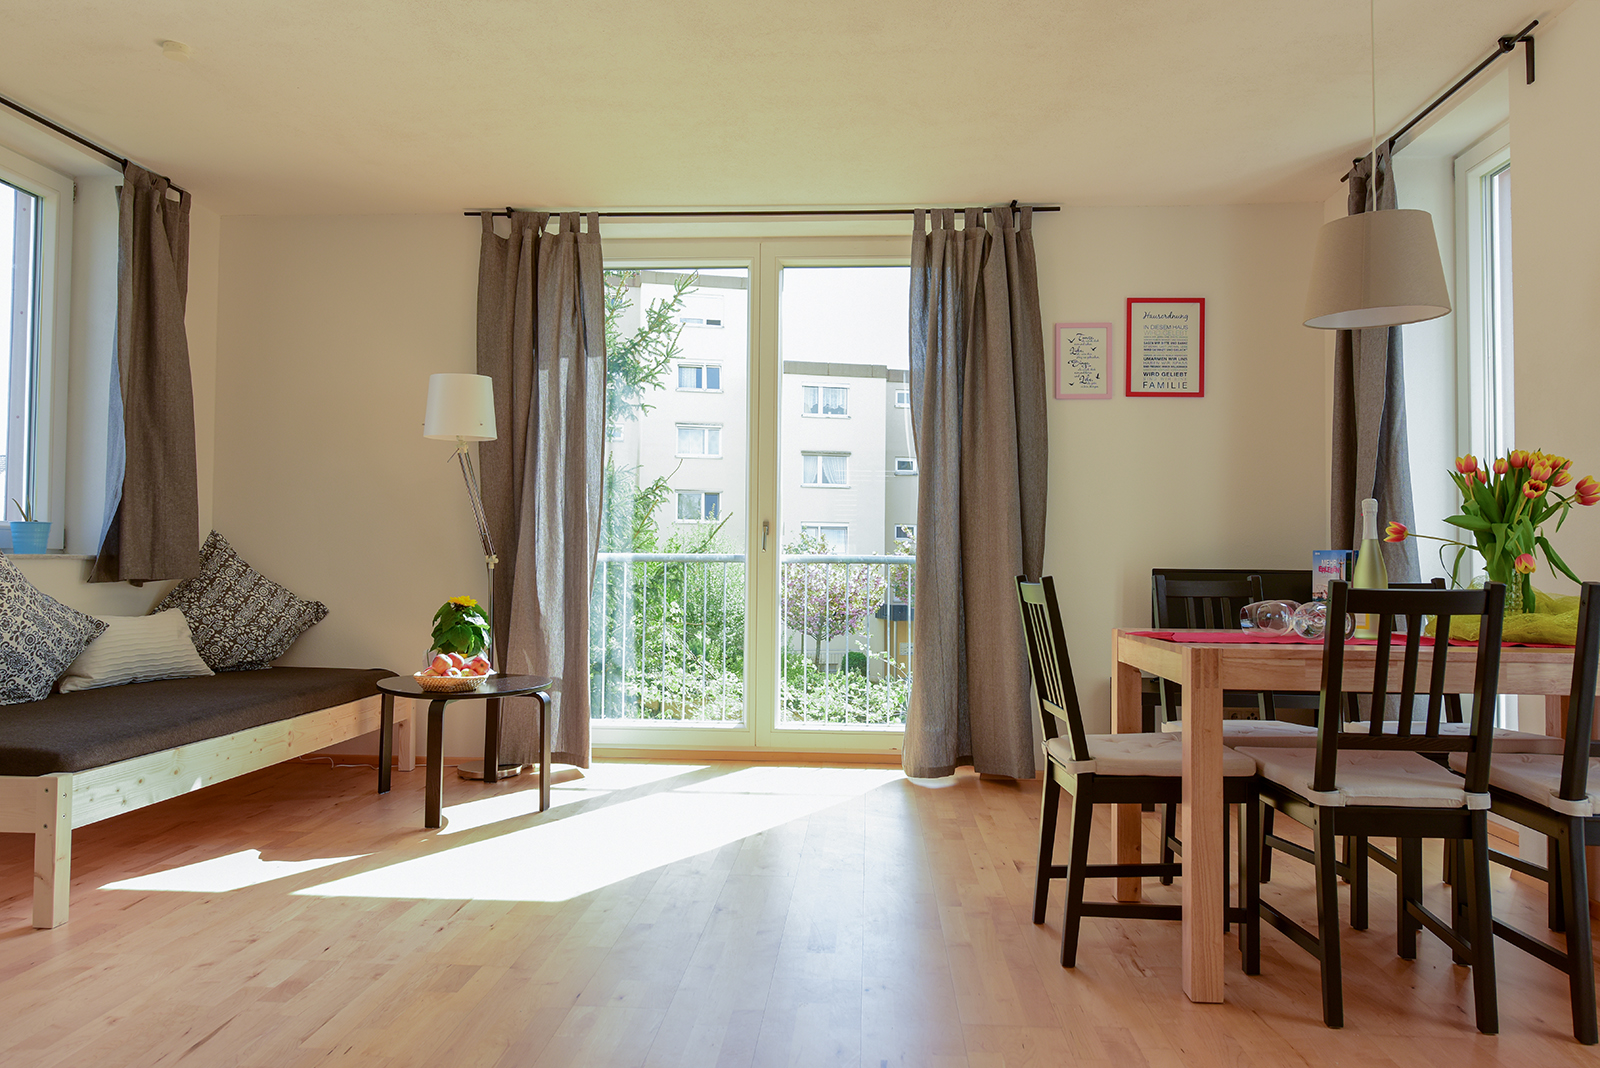 Holiday apartments on Lake Constance: Seeblüte - Living Area